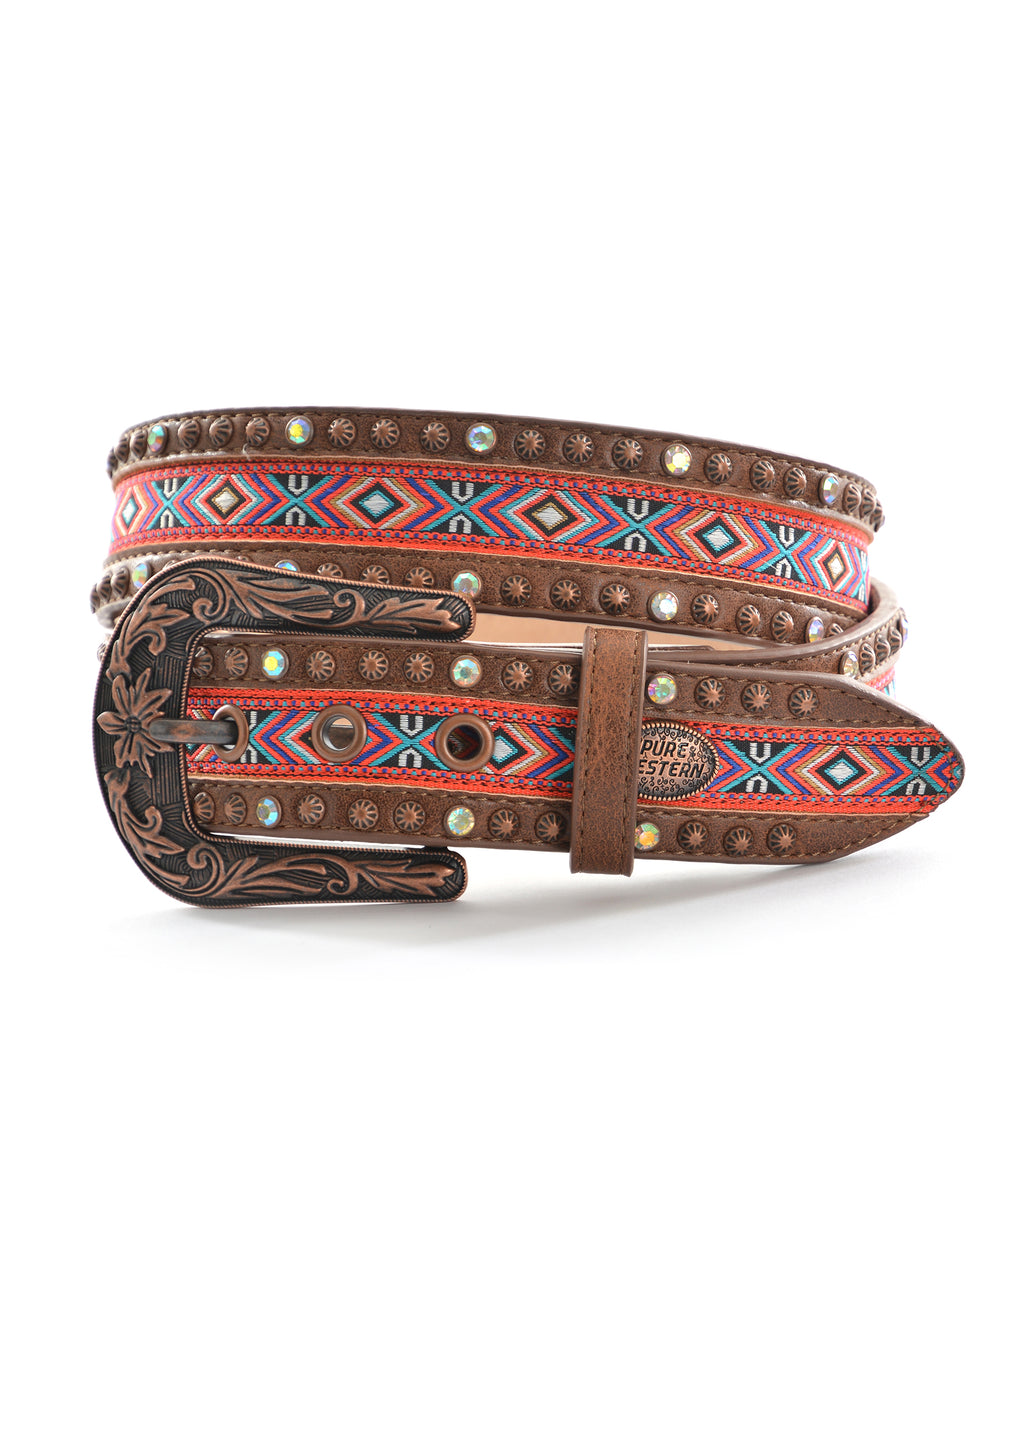 Maria Belt - Vault Country Clothing